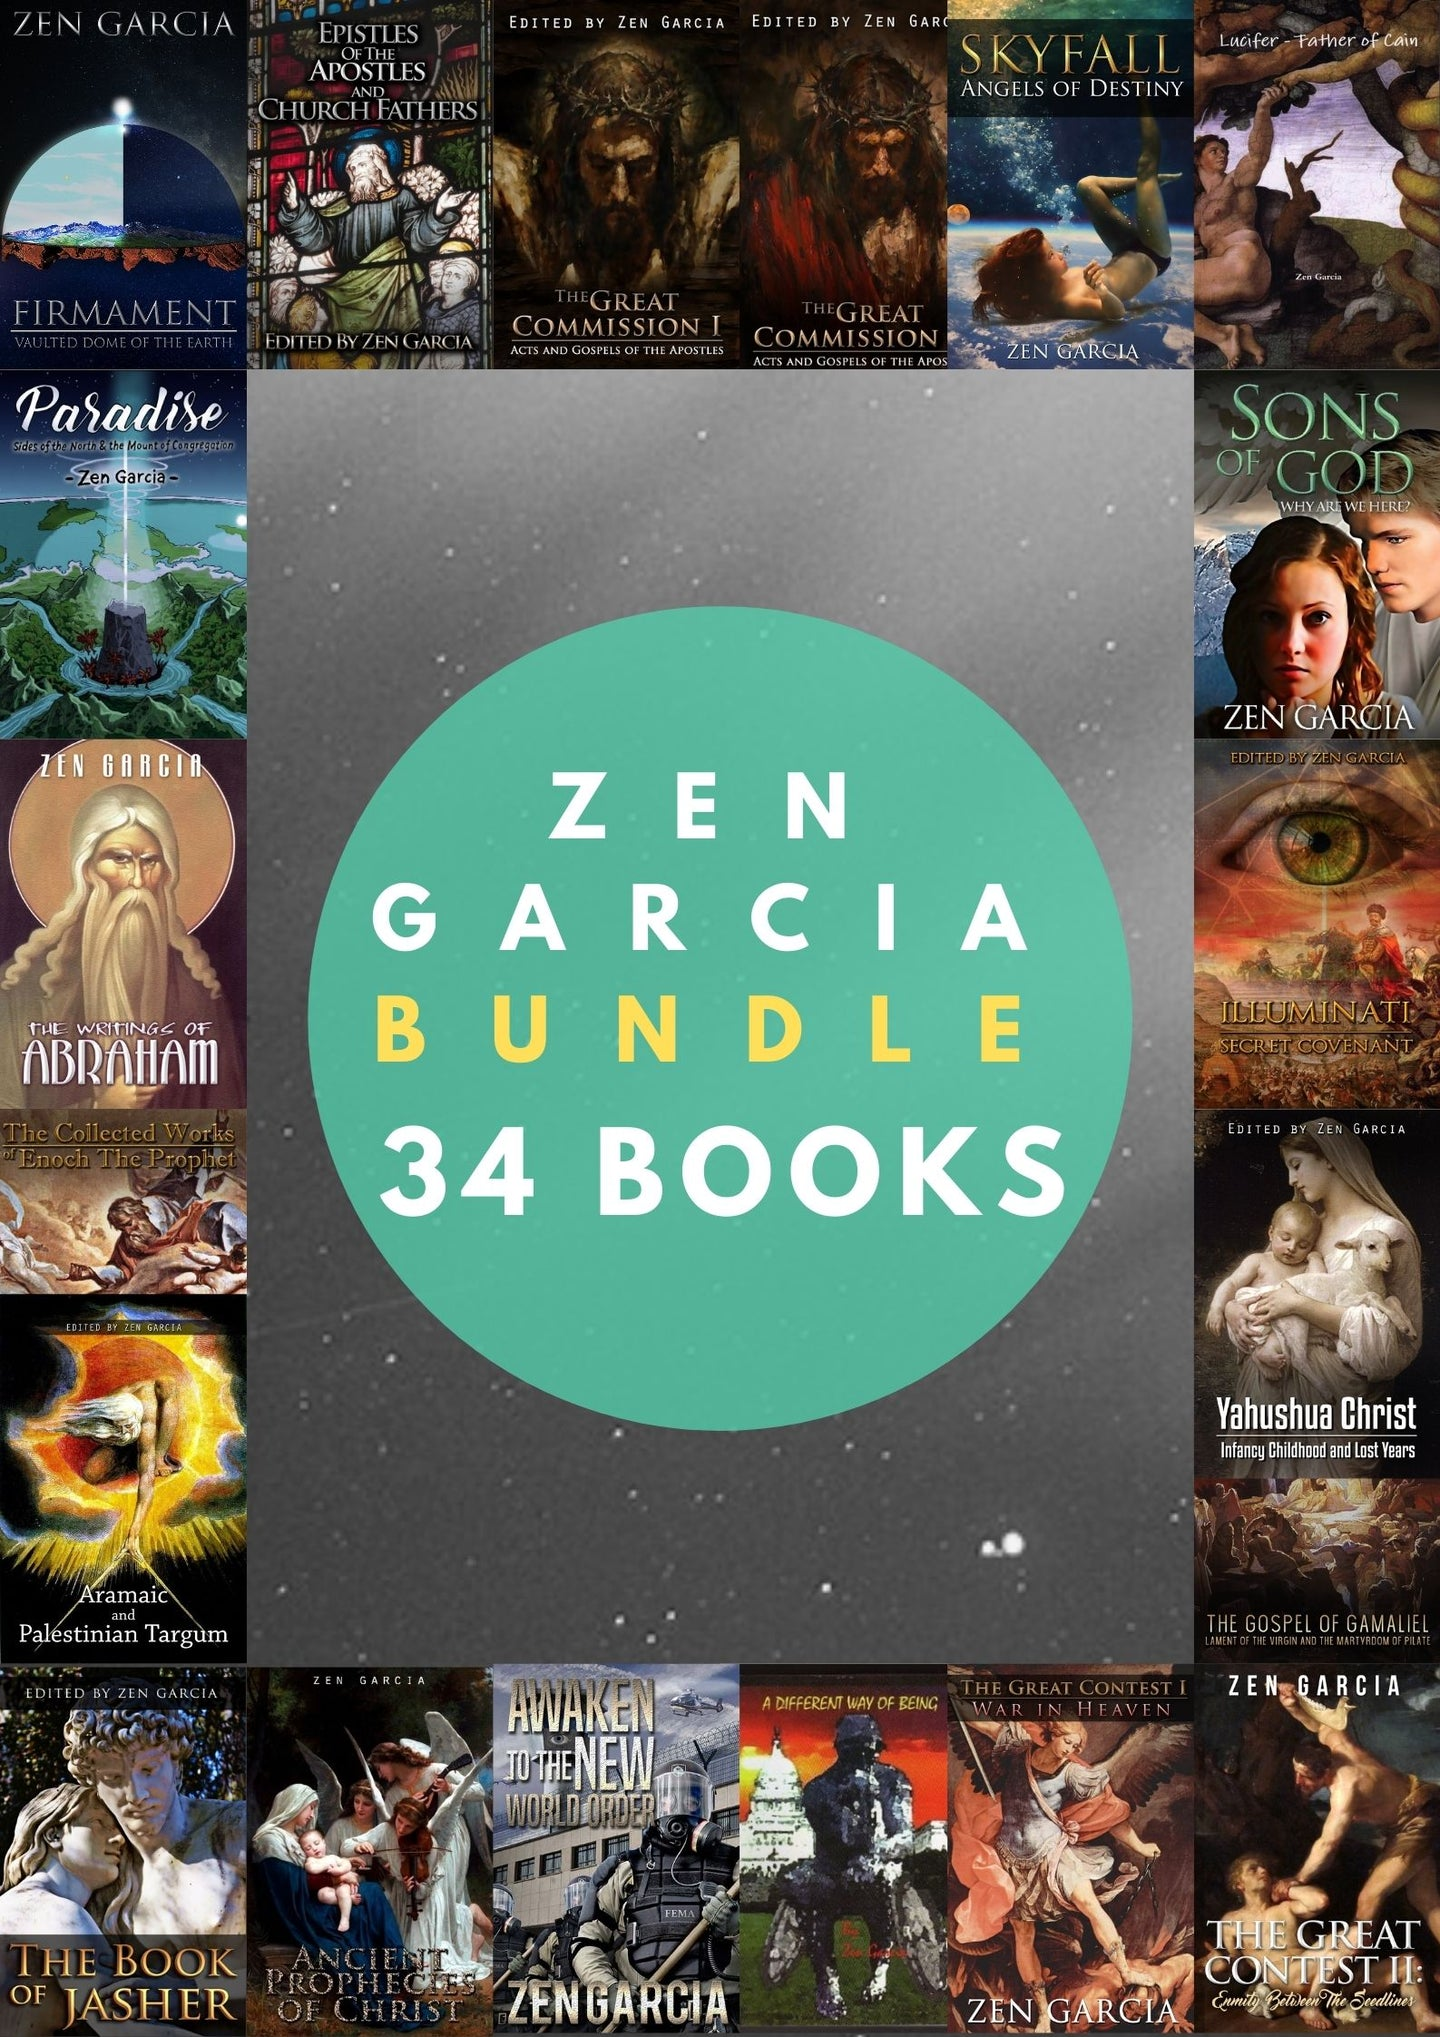 Zen Garcia Bundle - 34 Books